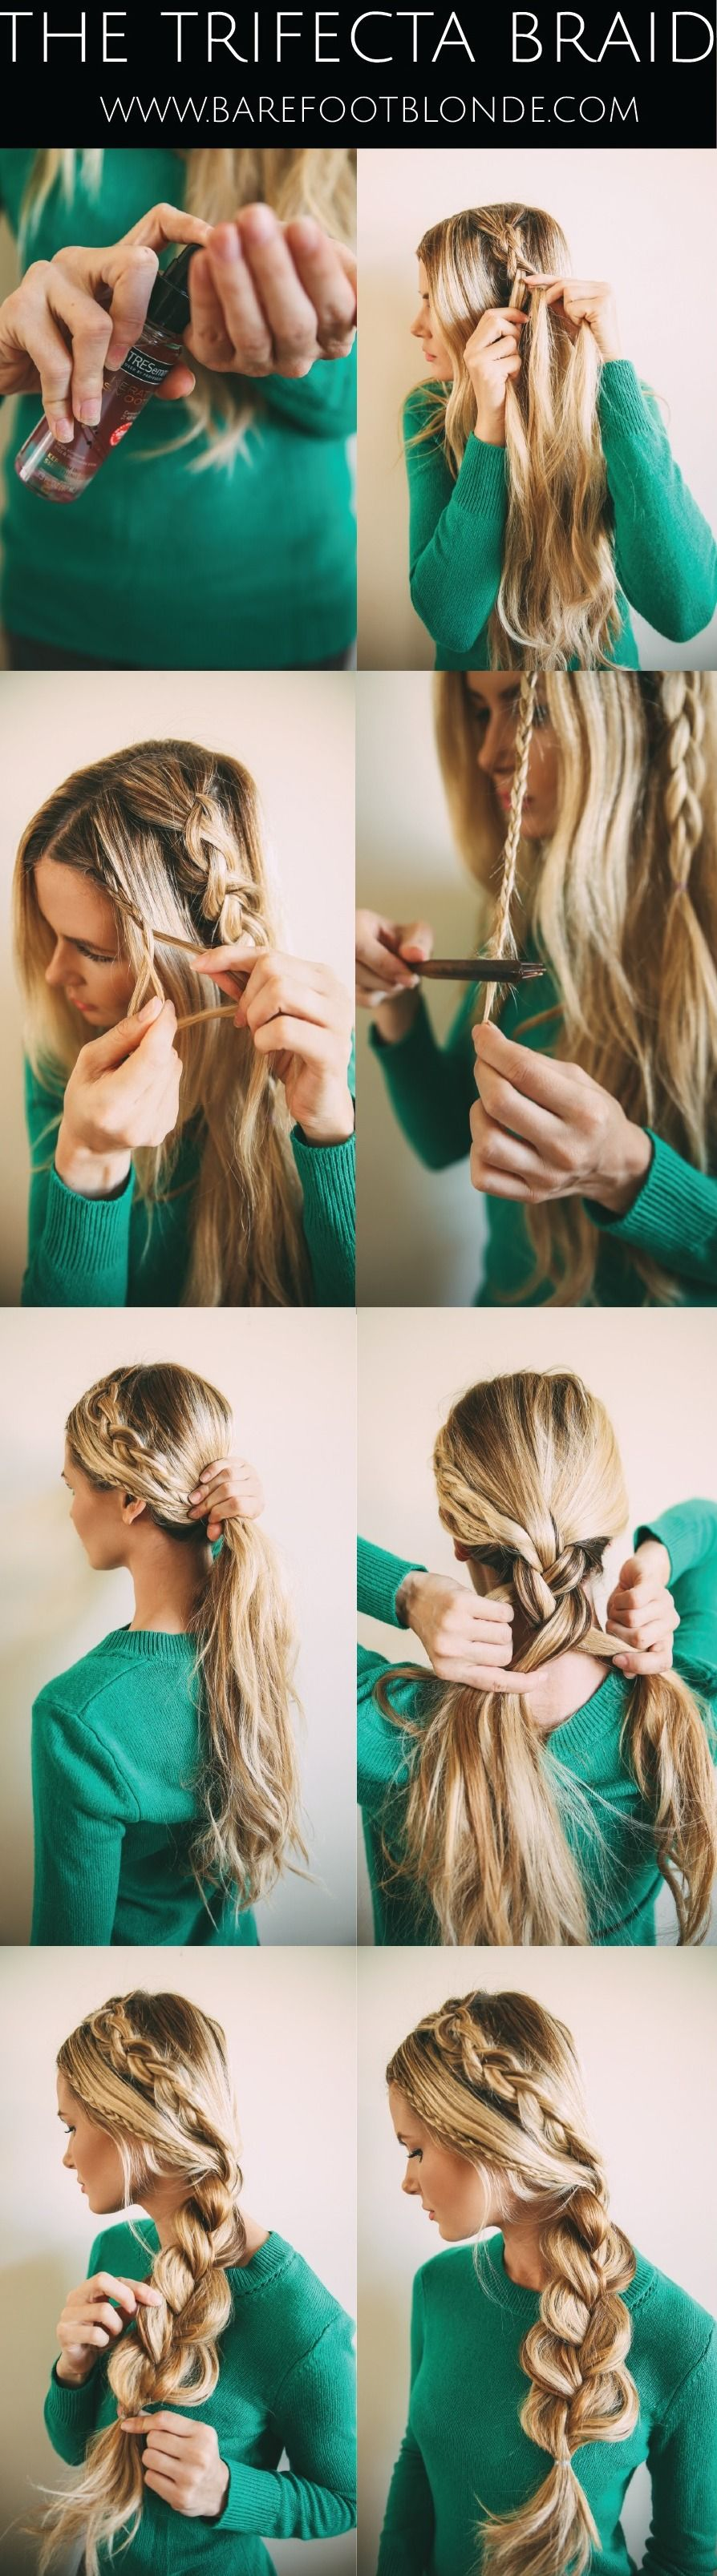 The Trifecta Braid How To...wishing I had my long hair back to do this…